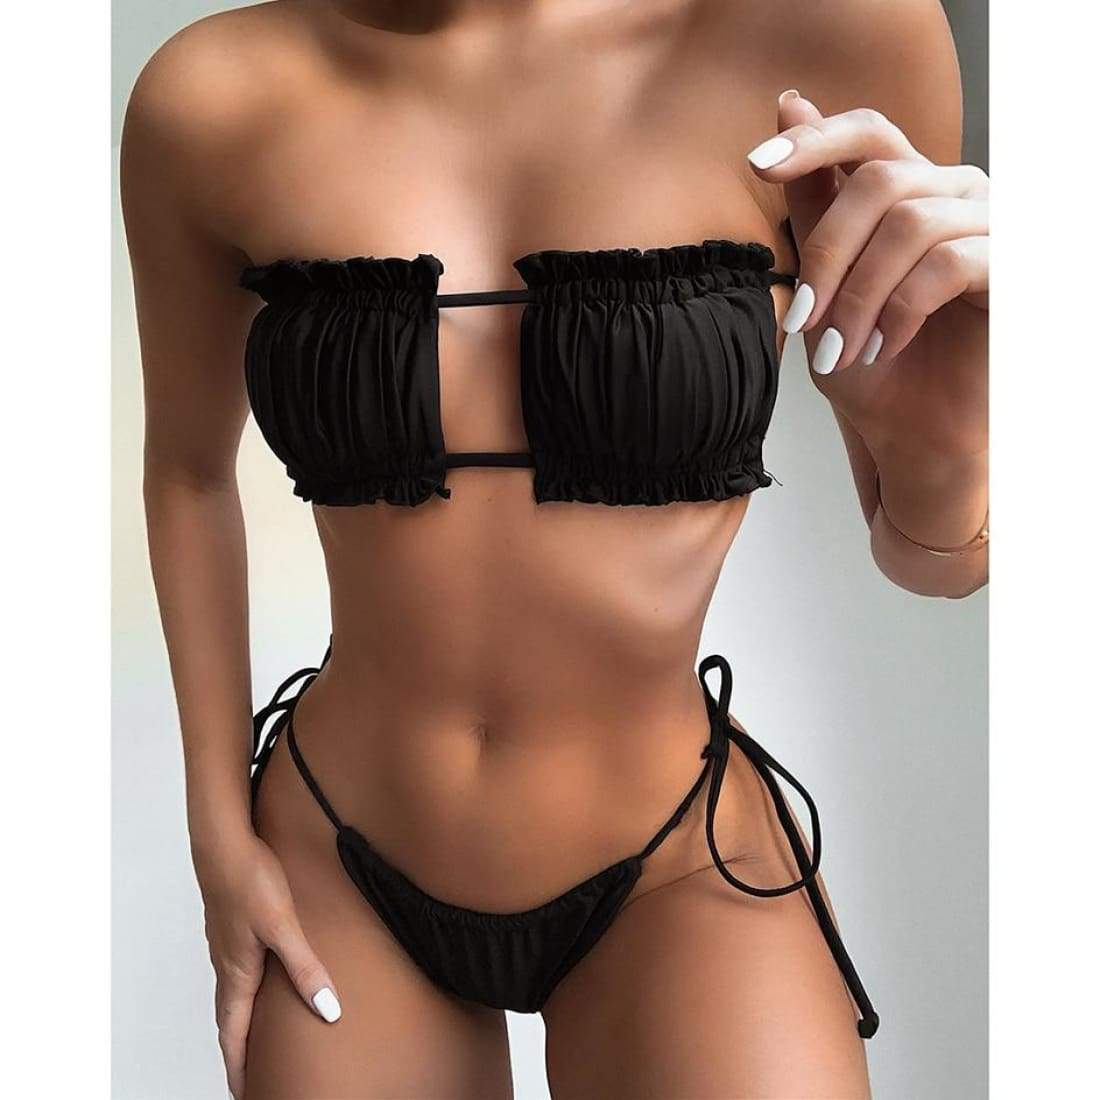 Ocean waves bikini - swimsuit swimsuits bikini bikinis bathing suit bathing suits swimwear swimming suits